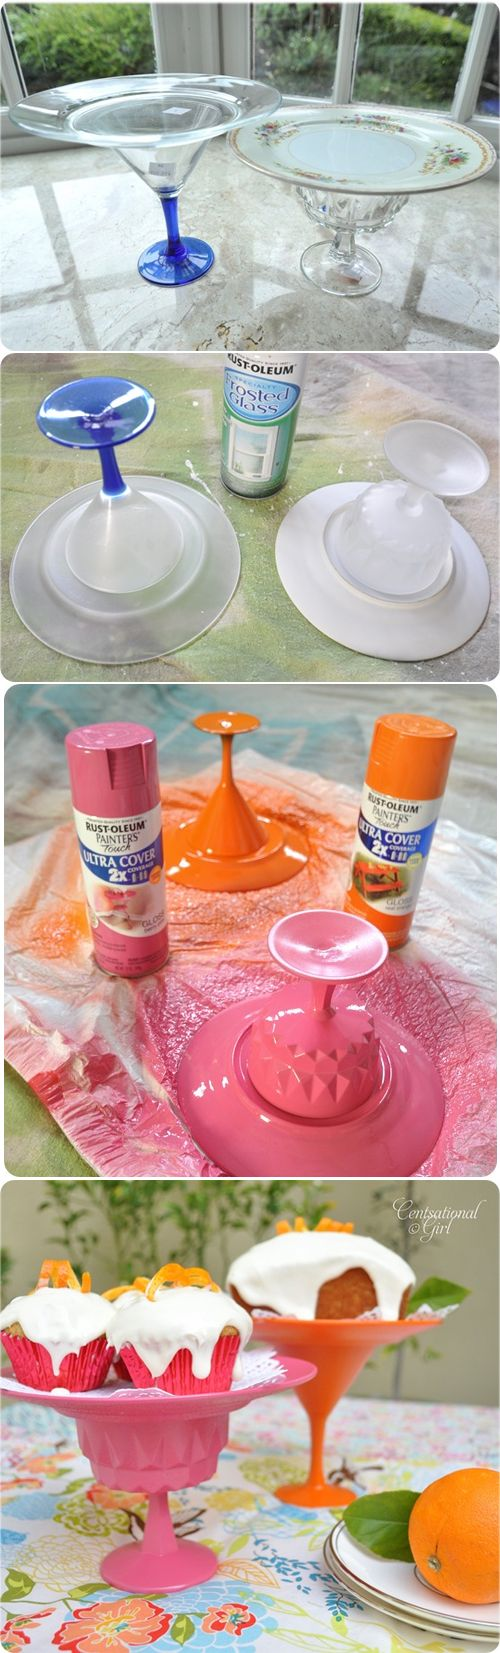 great idea for using old dishes you don't want to use anymore, and you can always find these things at yard sales for cheap.